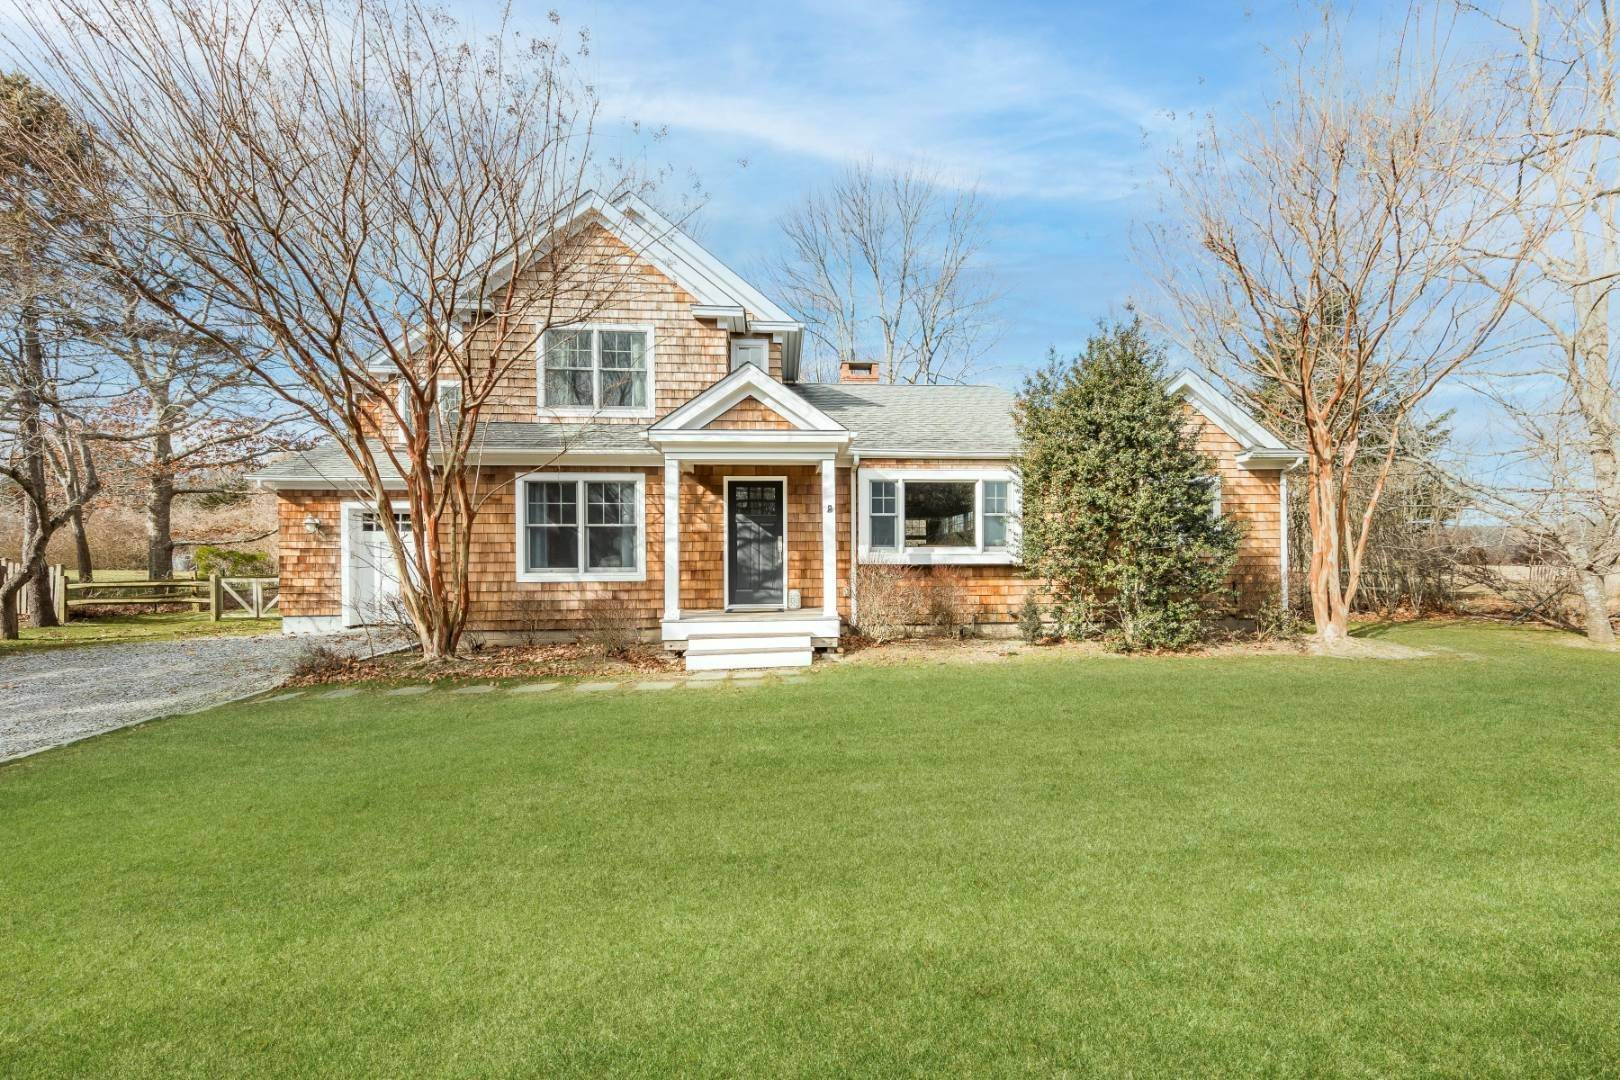 Single Family Home for Sale at Prime Sag Harbor Opportunity With Reserve Views 219 Ferry Road, Sag Harbor, NY 11963